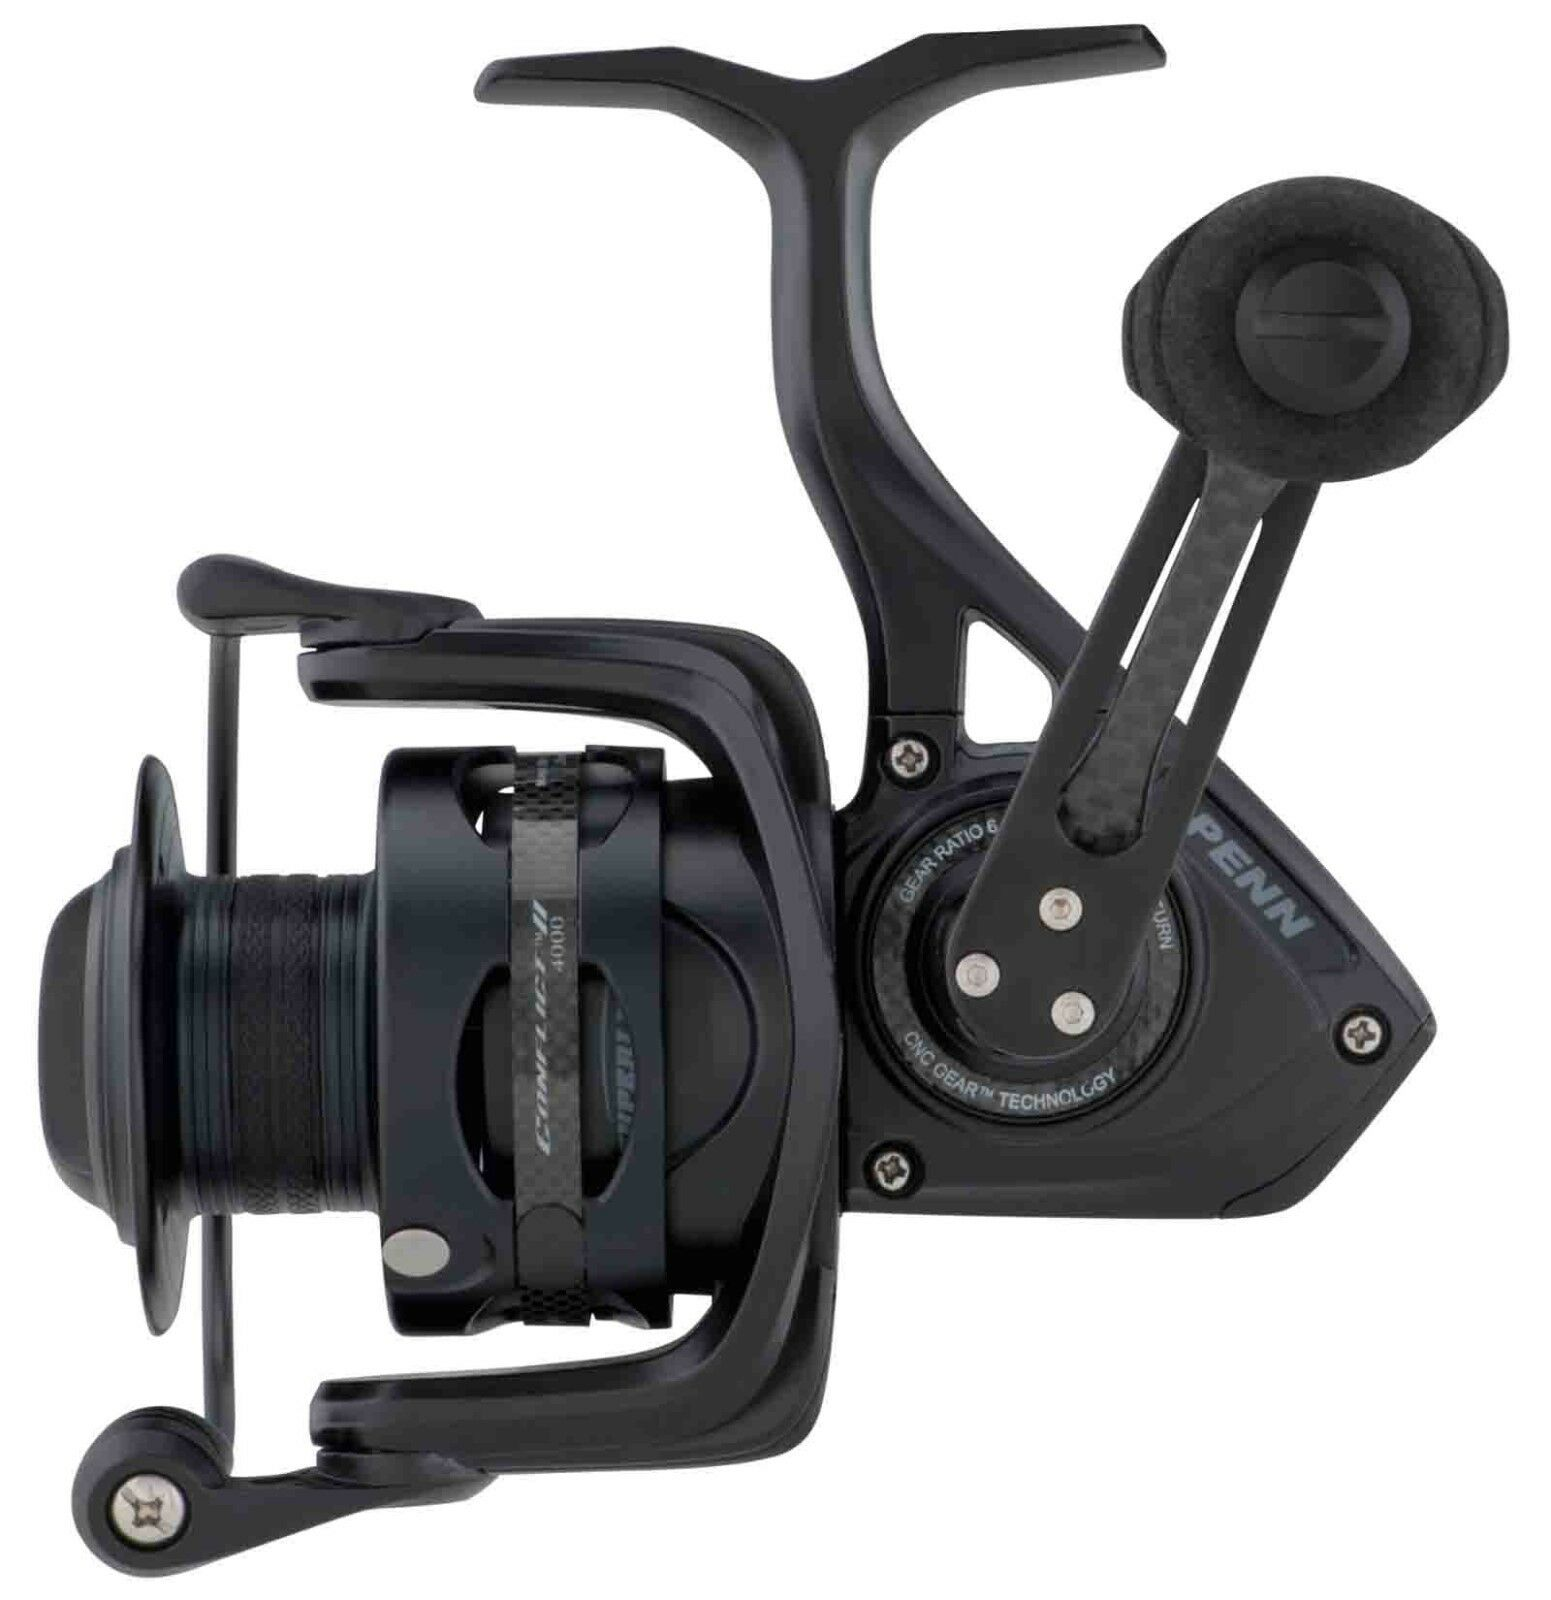 Penn  New Conflict II LC Long Cast Sea Spin Spinning Saltwater Beach Fishing Reel  quality product